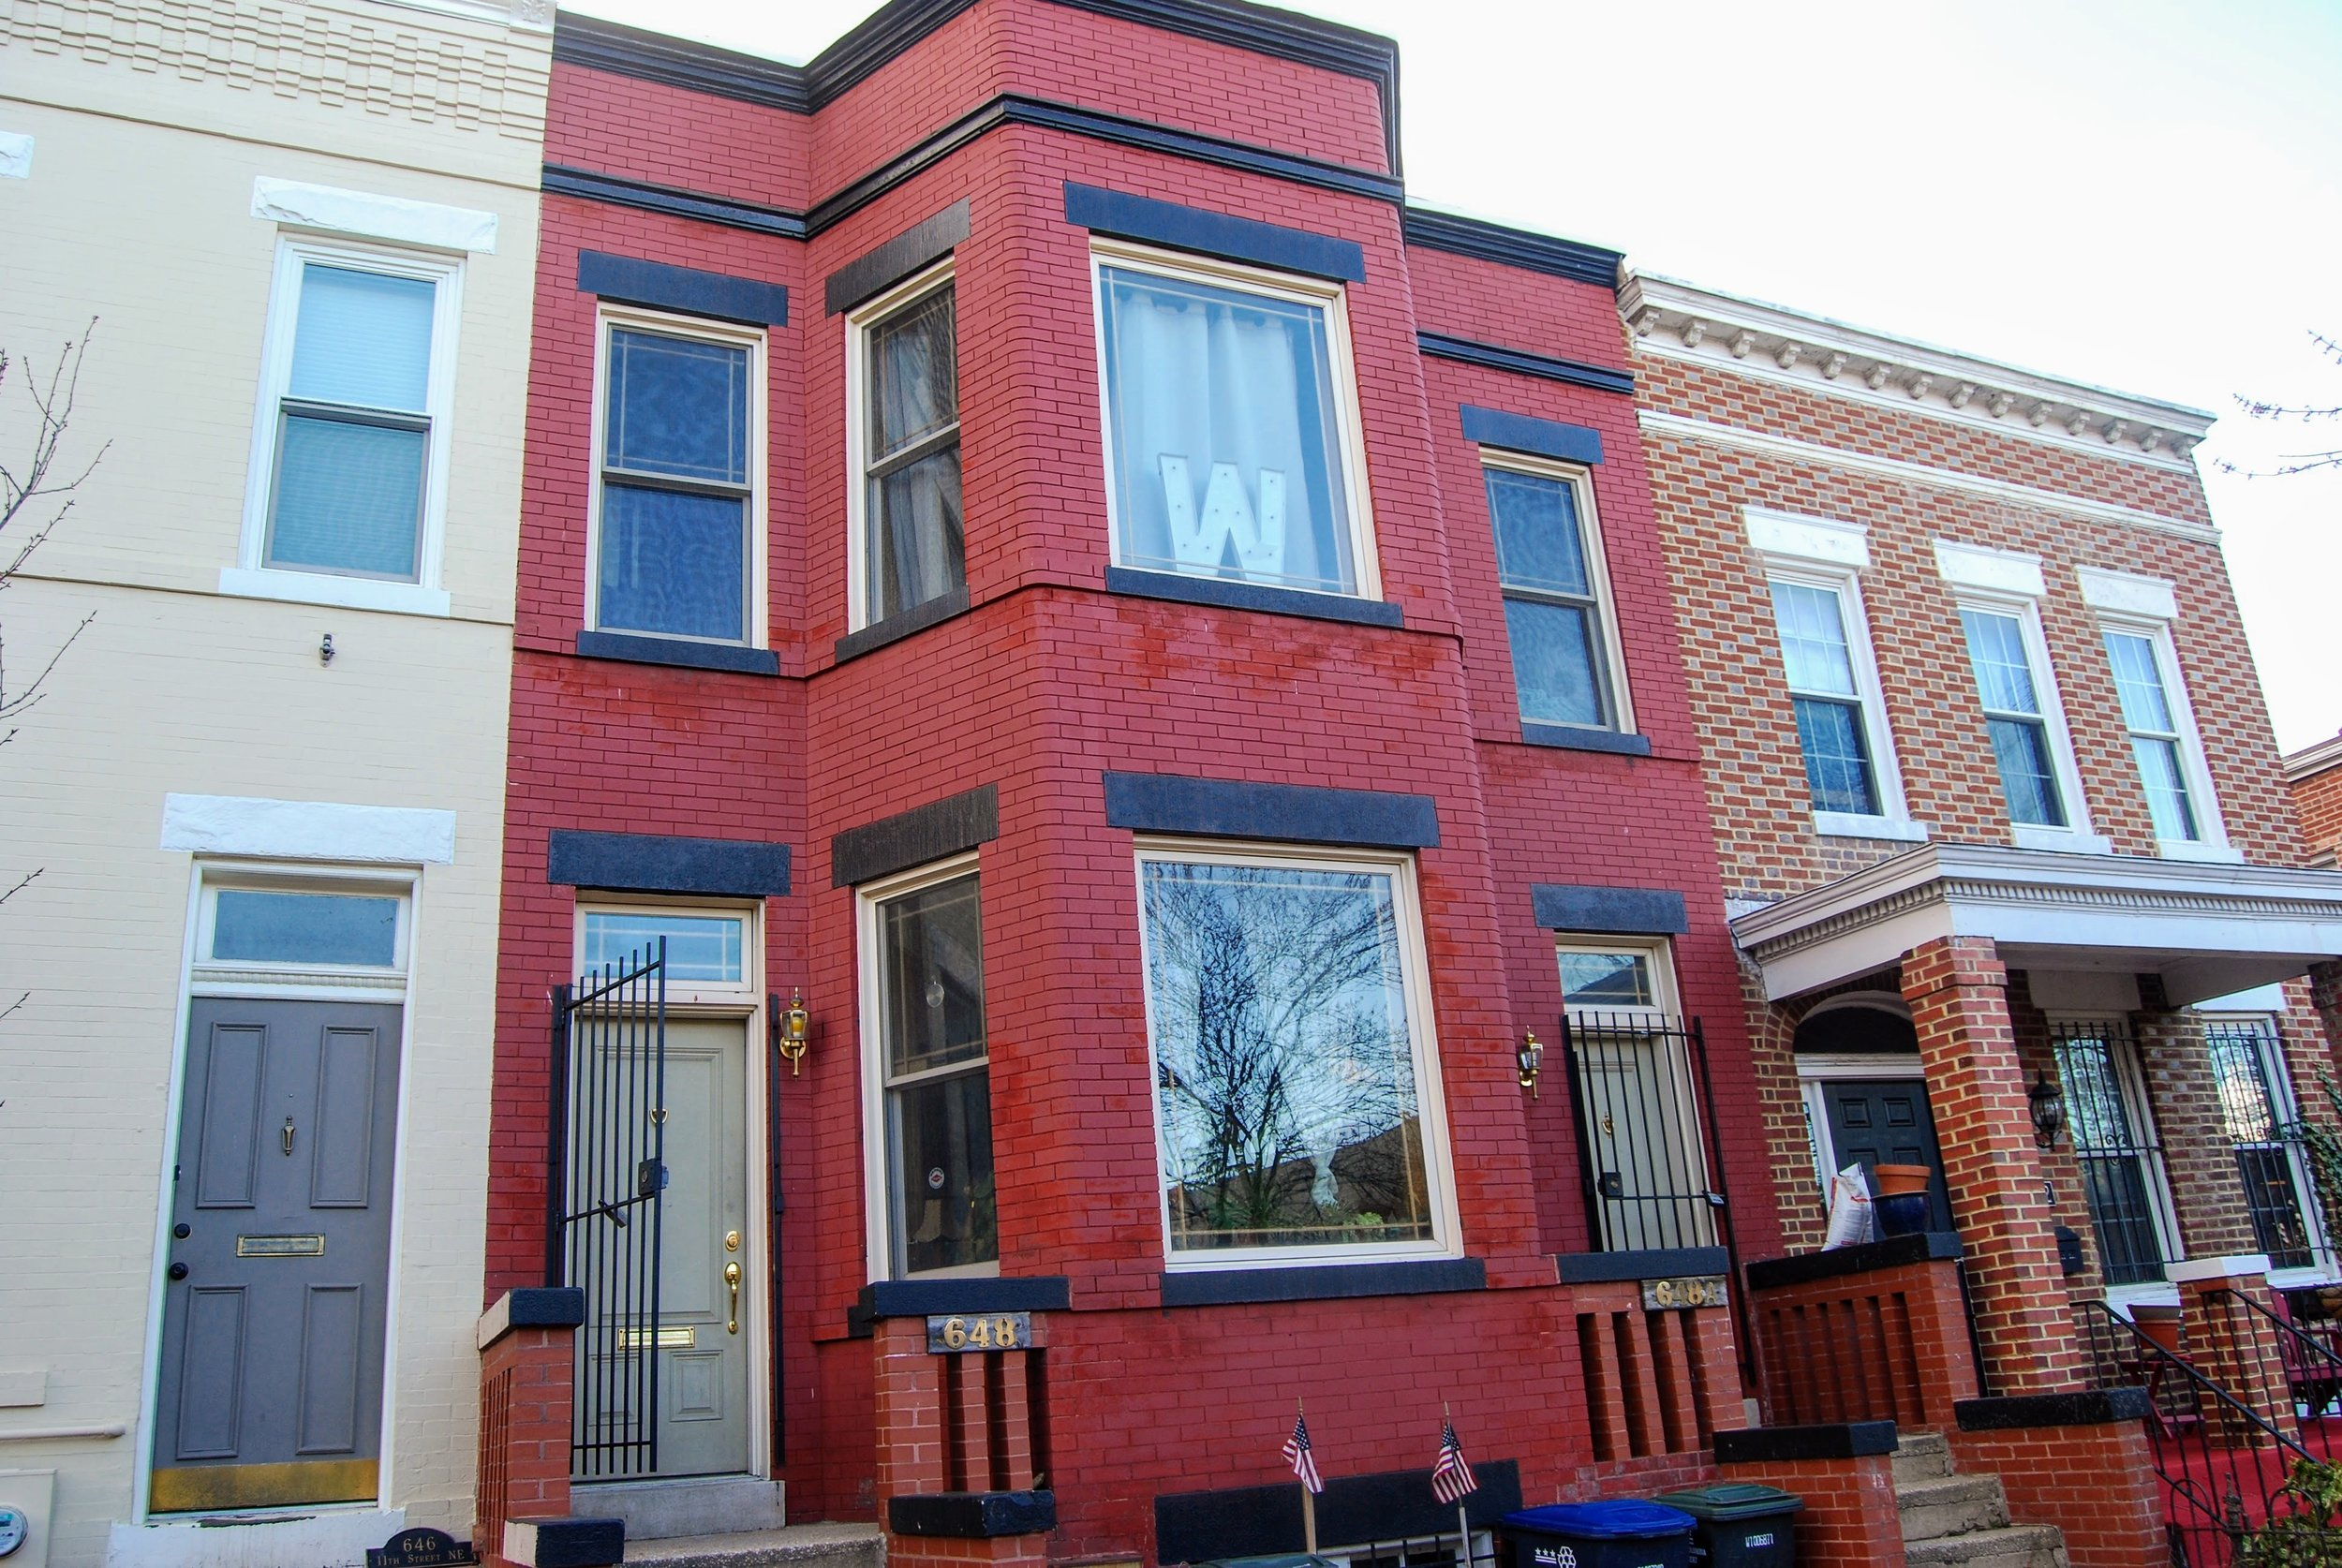 Our great Airbnb on Capitol Hill in D.C. After some research, we decided to pay extra to stay on Capitol Hill because we were able to walk to most places and not have to rent car.